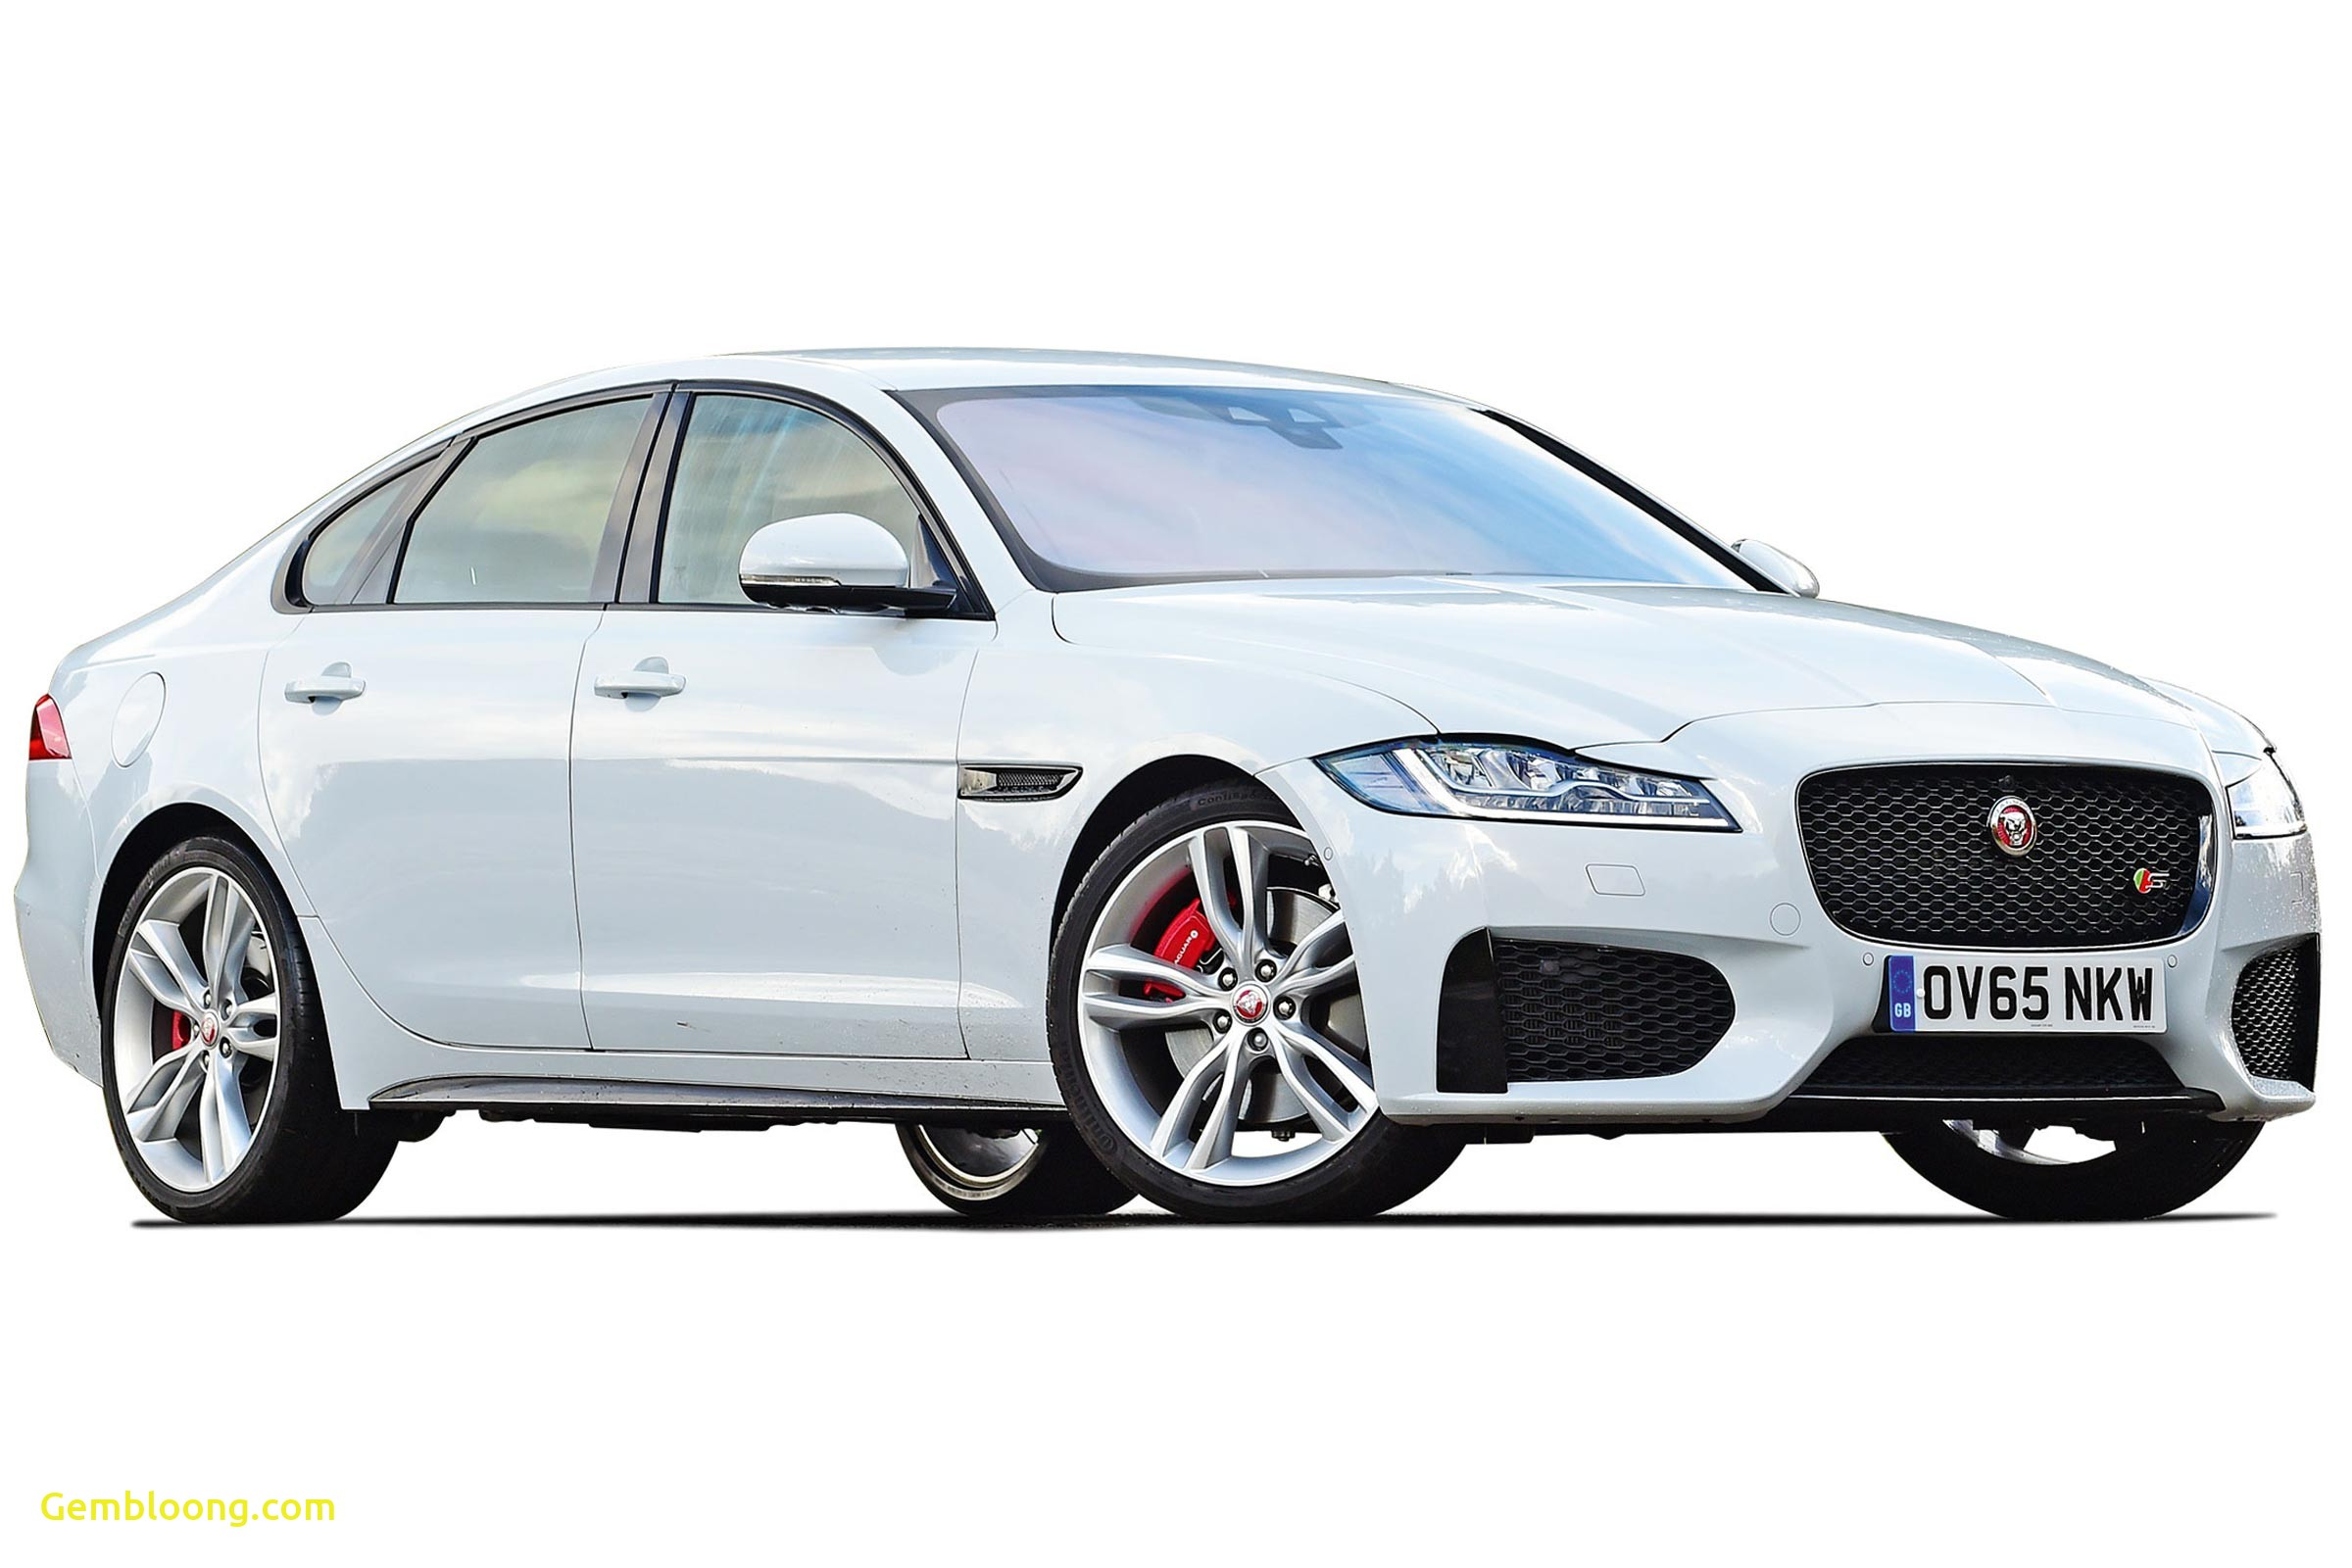 Cars for Sale by Owner Used Elegant Jaguar Xf Saloon Owner Reviews Mpg Problems Reliability